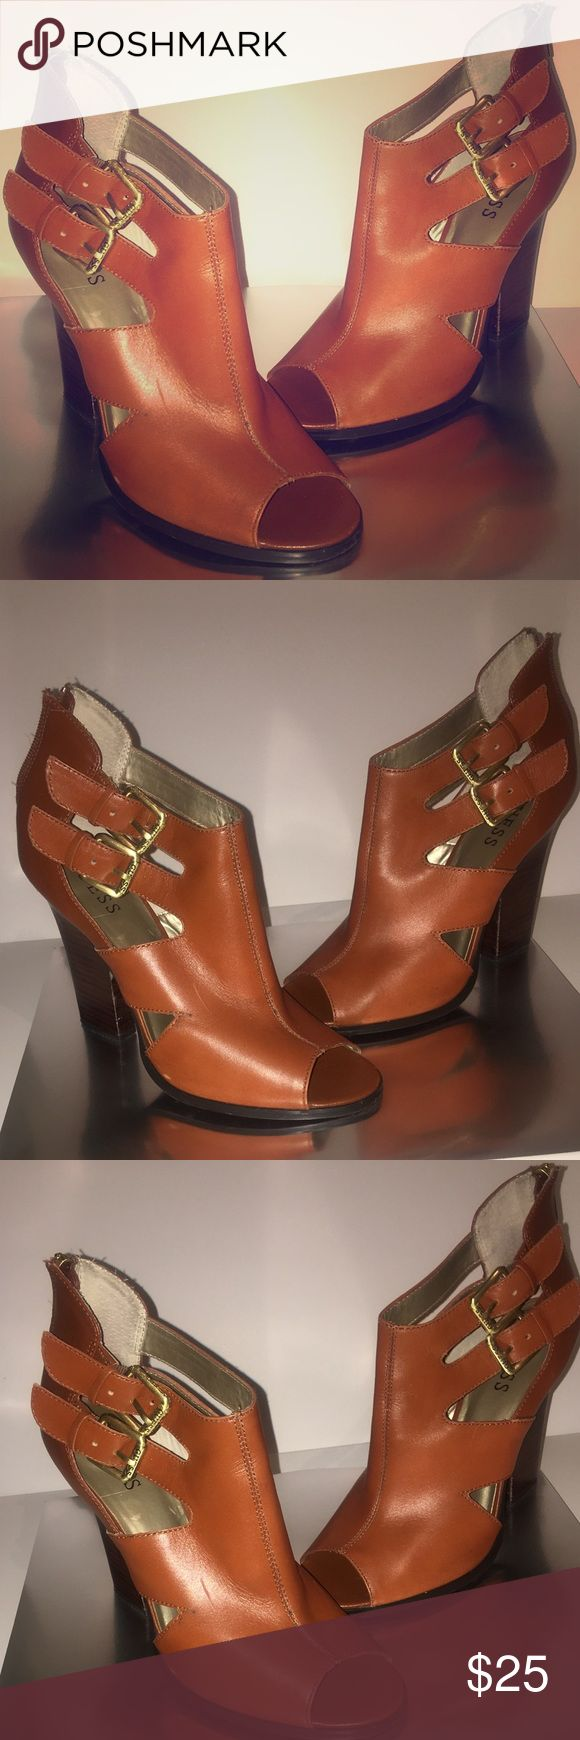 "Guess peep-toe booties Lightly used Camel colored booties with ""thick"" heel. Zip up back Guess Shoes Ankle Boots & Booties"